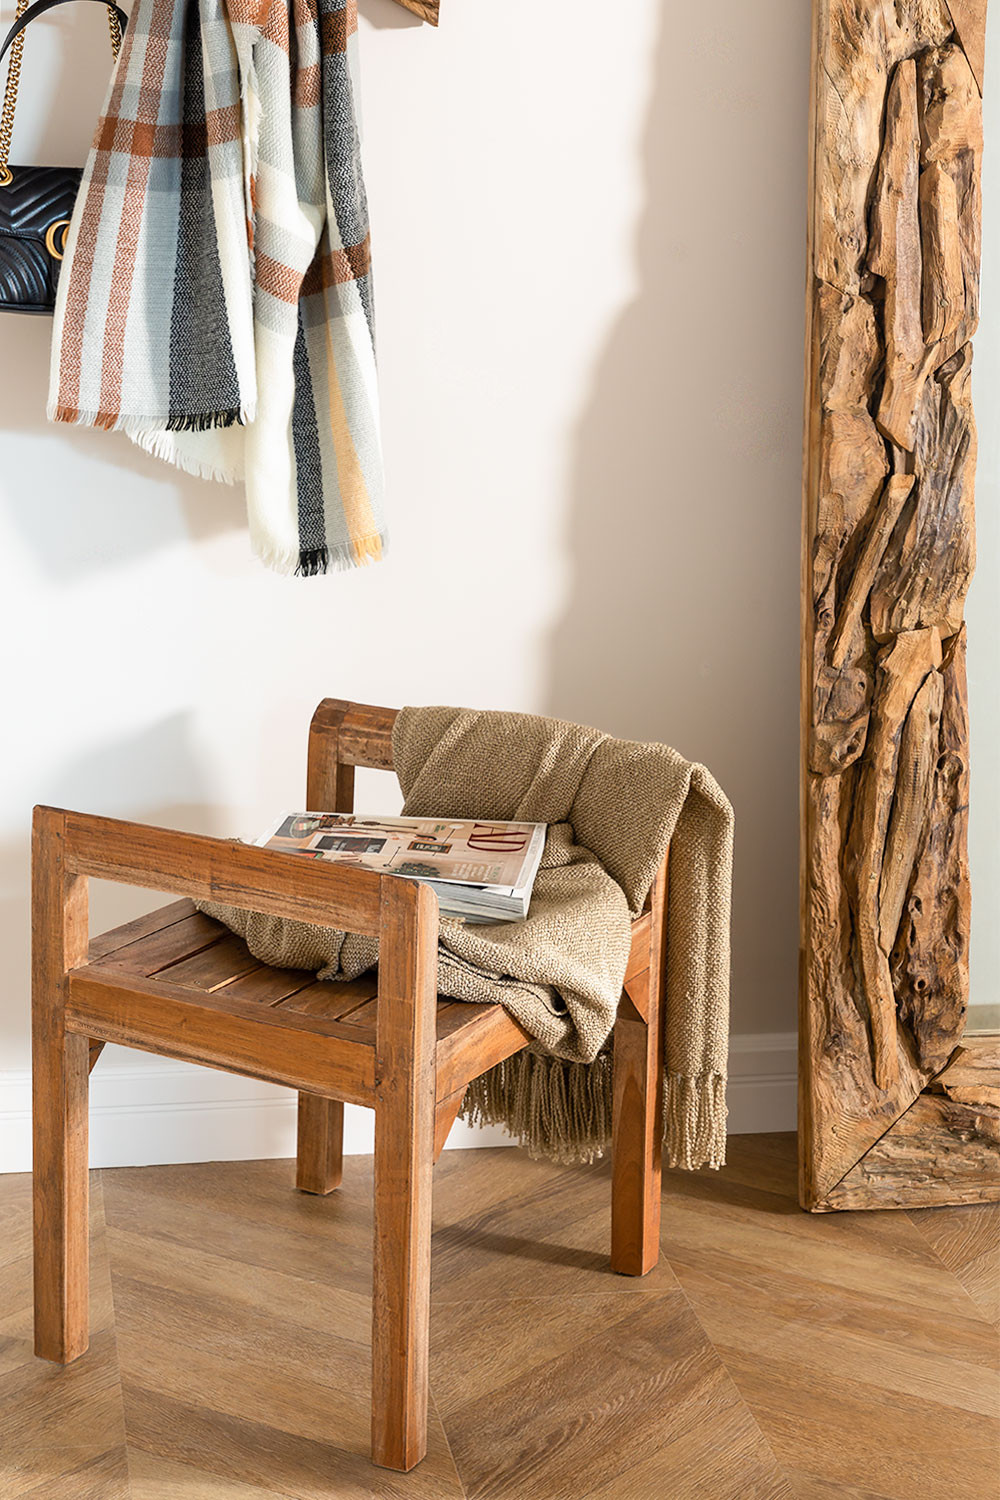 Recycled Wood Bench with Armrests Parans, gallery image 1